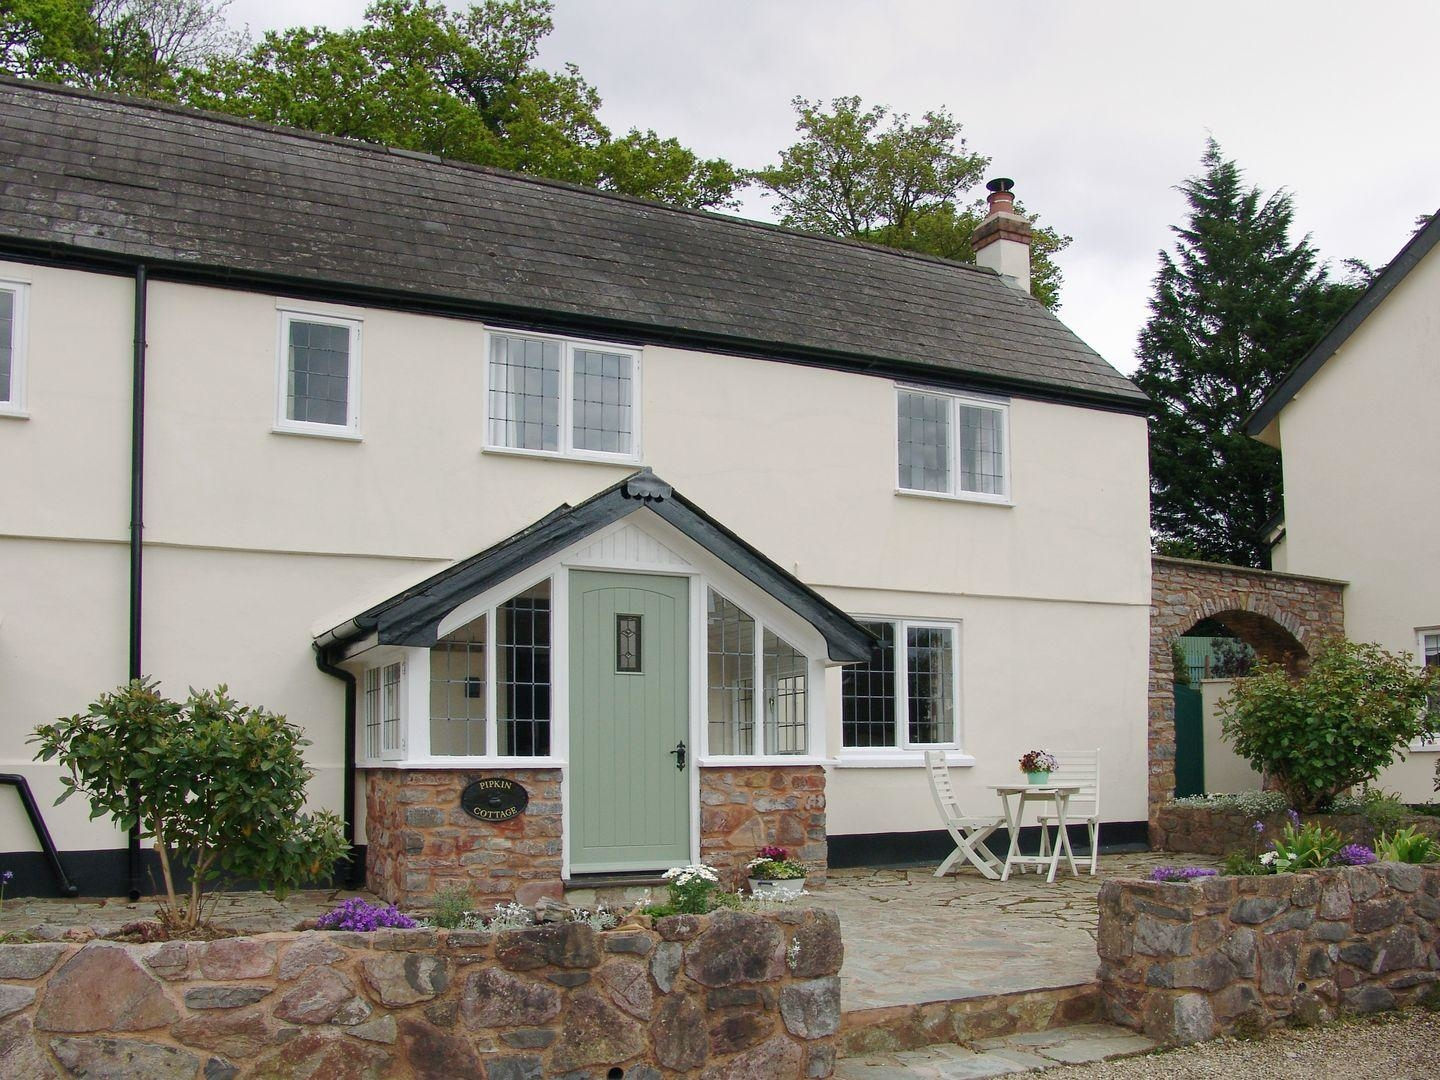 2 bedroom Cottage for rent in Tiverton